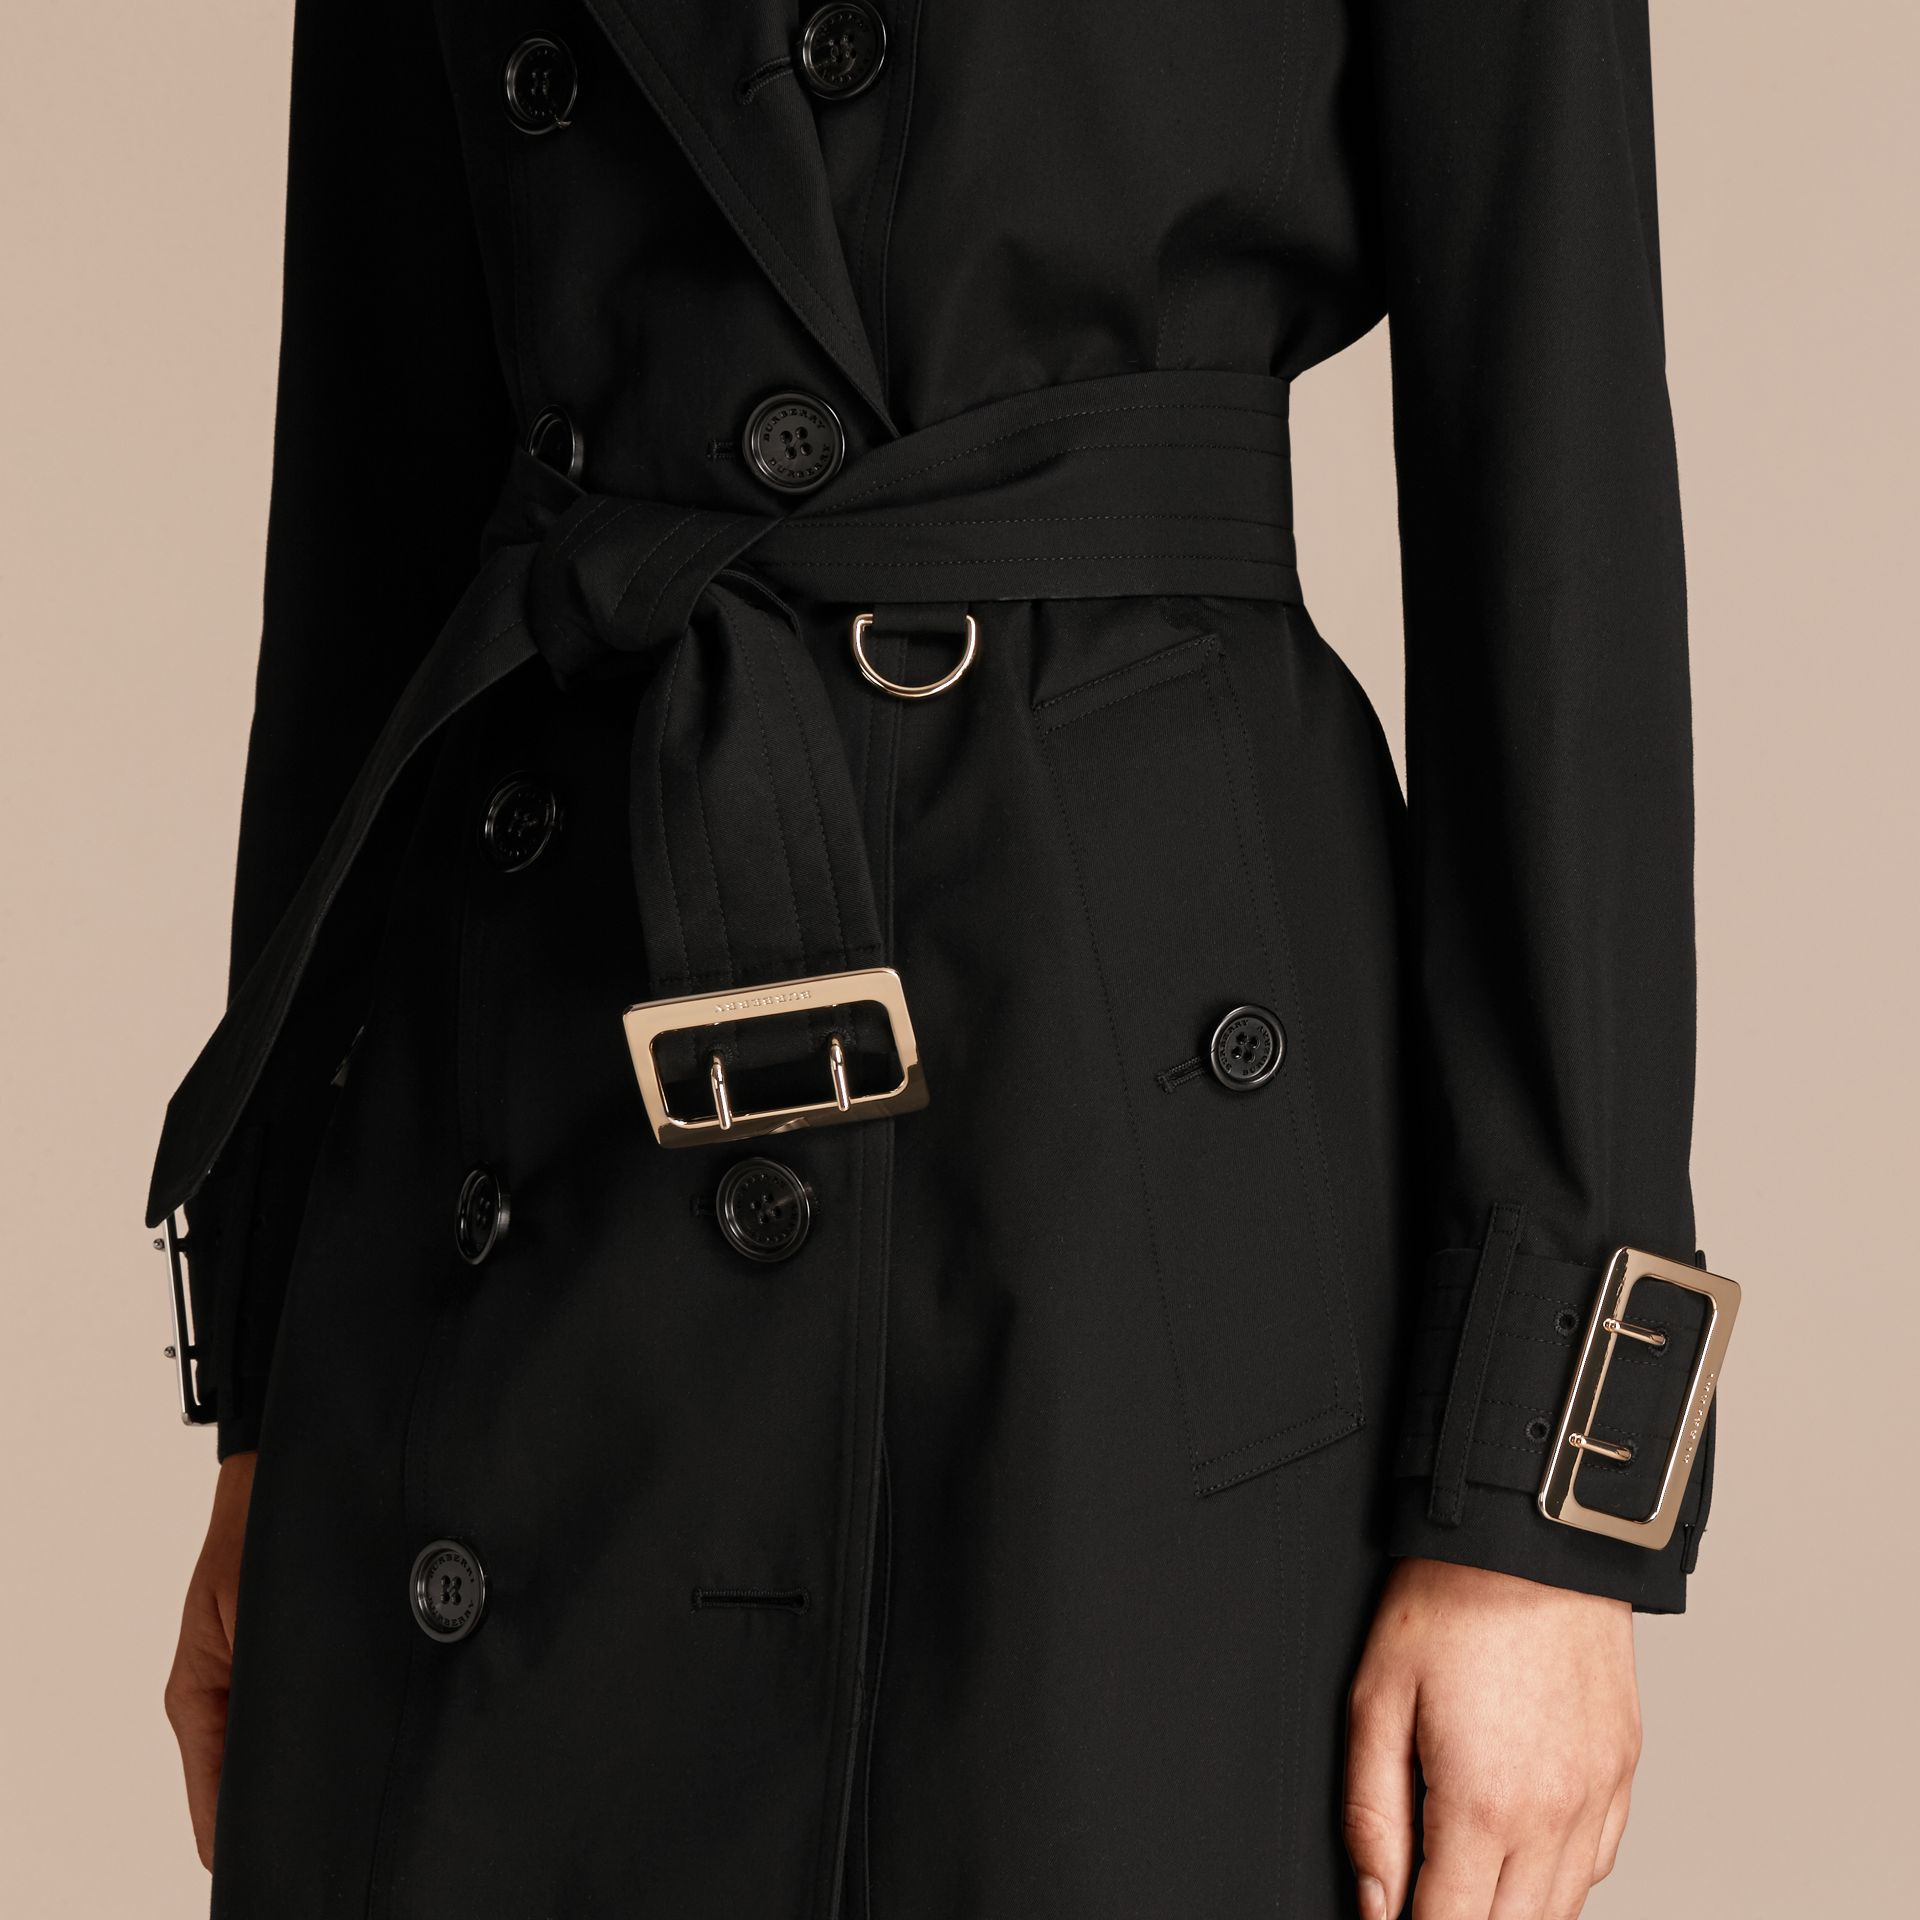 Cotton Gabardine Trench Coat with Oversize Buckle Detail Black - gallery image 5